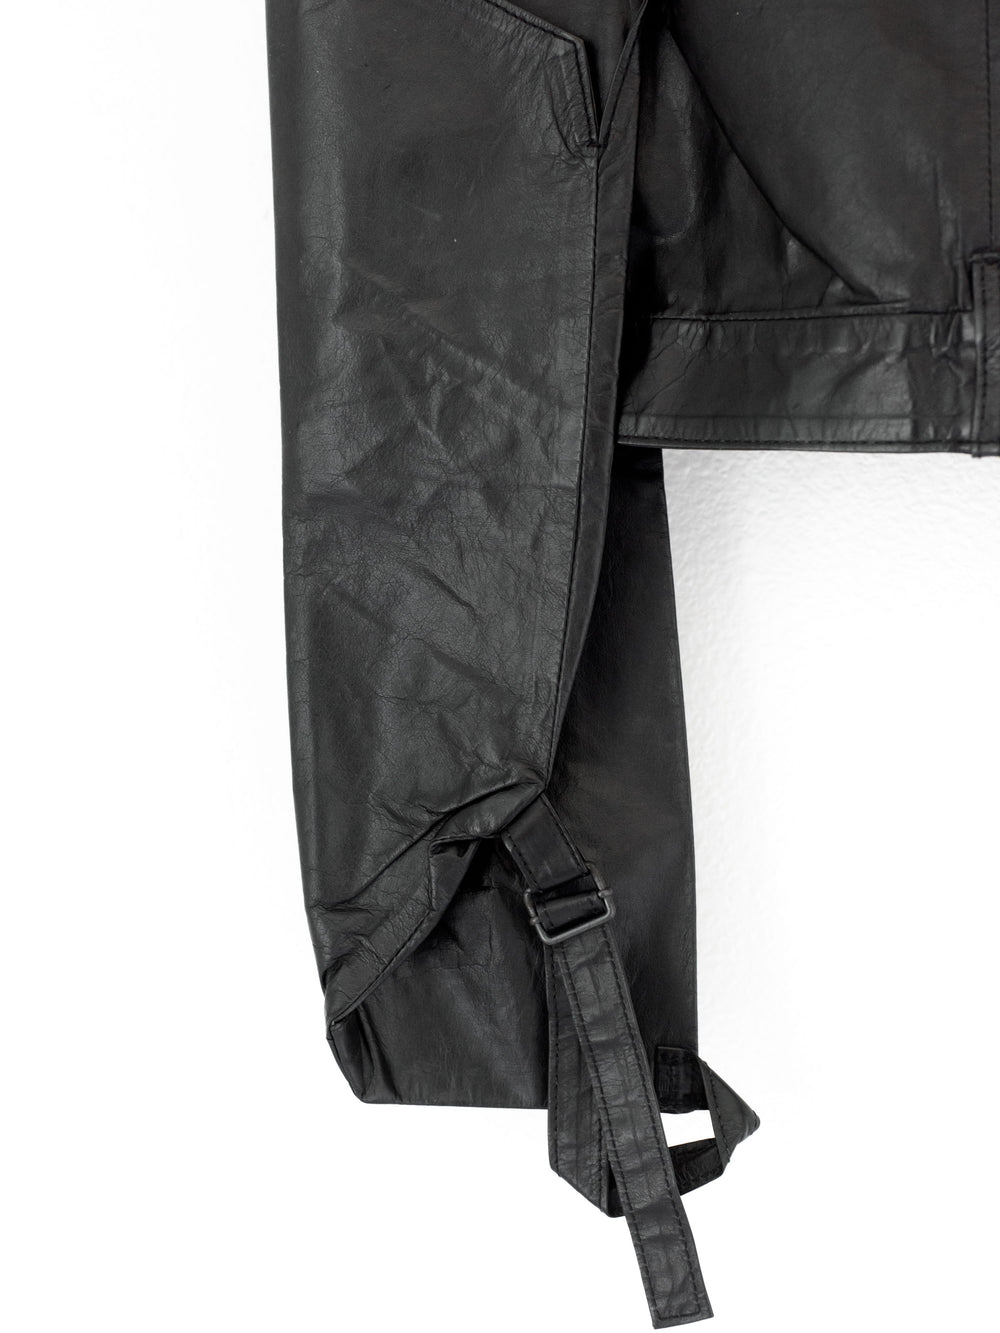 Ann Demeulemeester SS04 Kangaroo Leather Paneled Garter Skirt